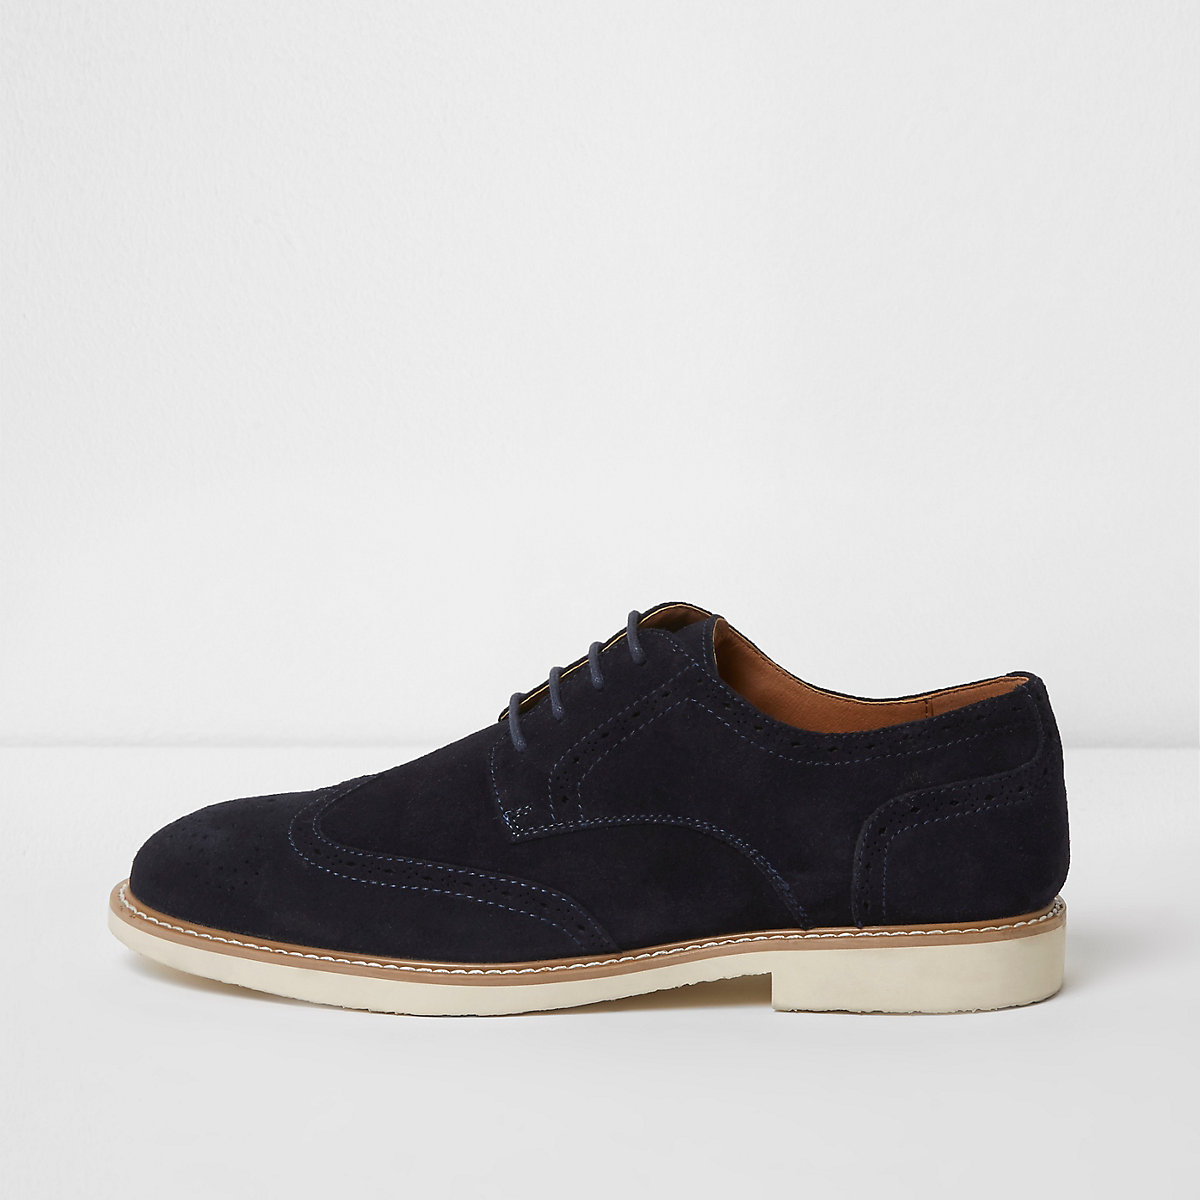 Navy suede white sole brogues